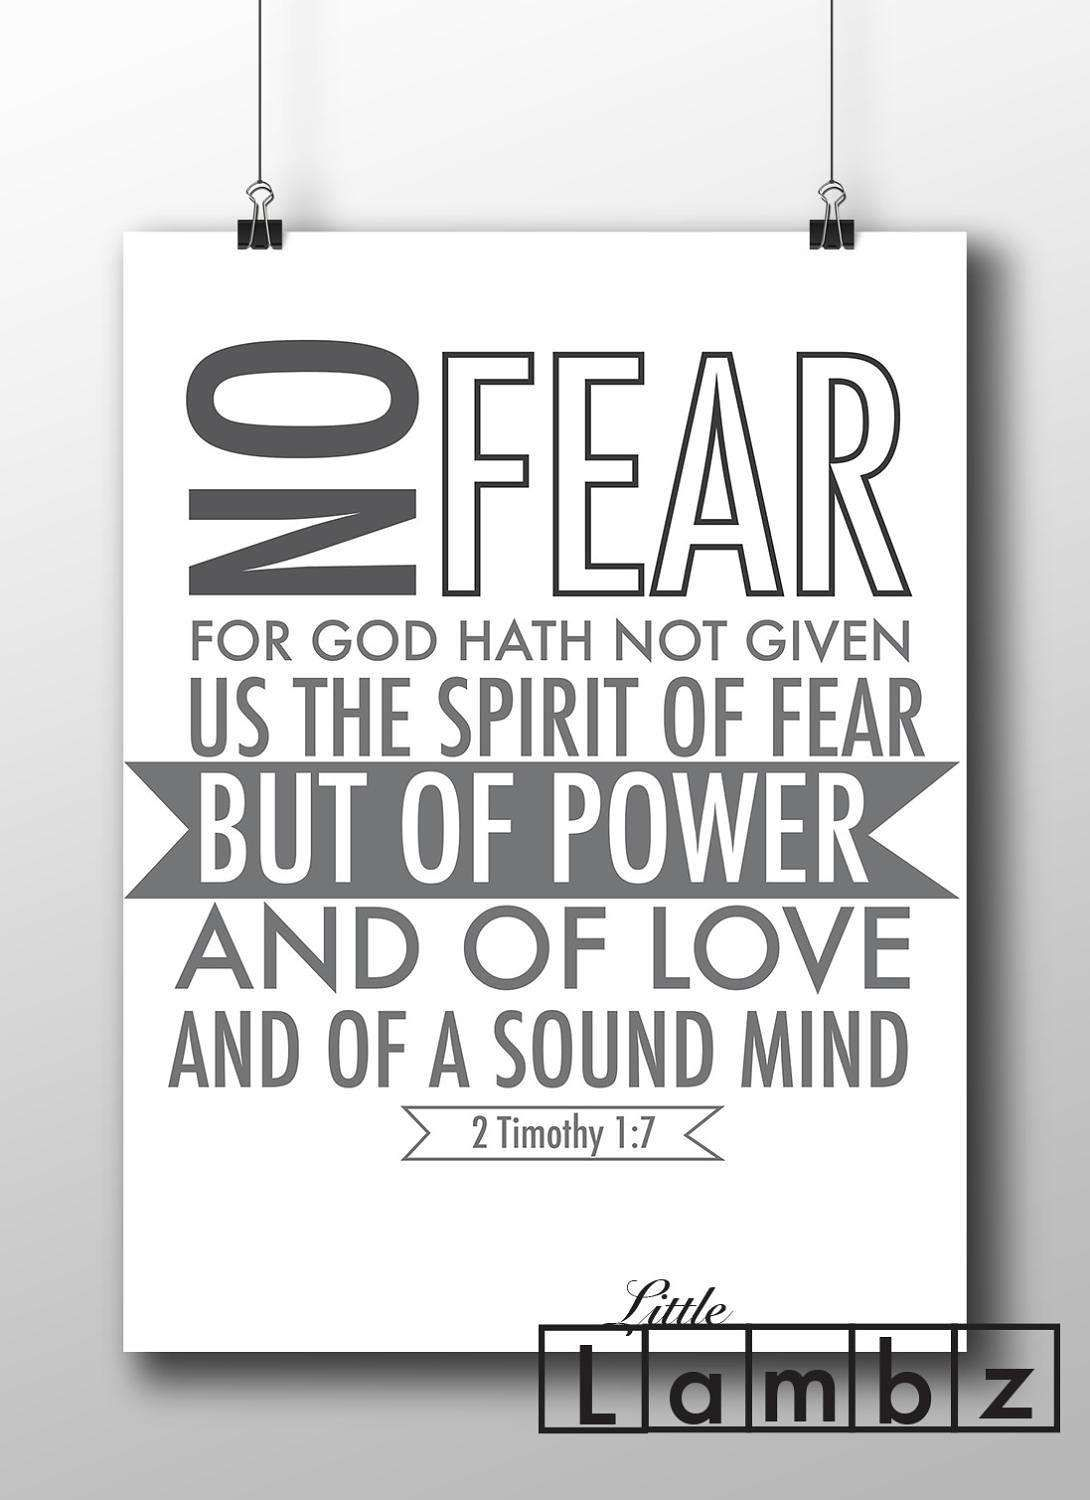 2 timothy 17no feargod has not given us the spirit of